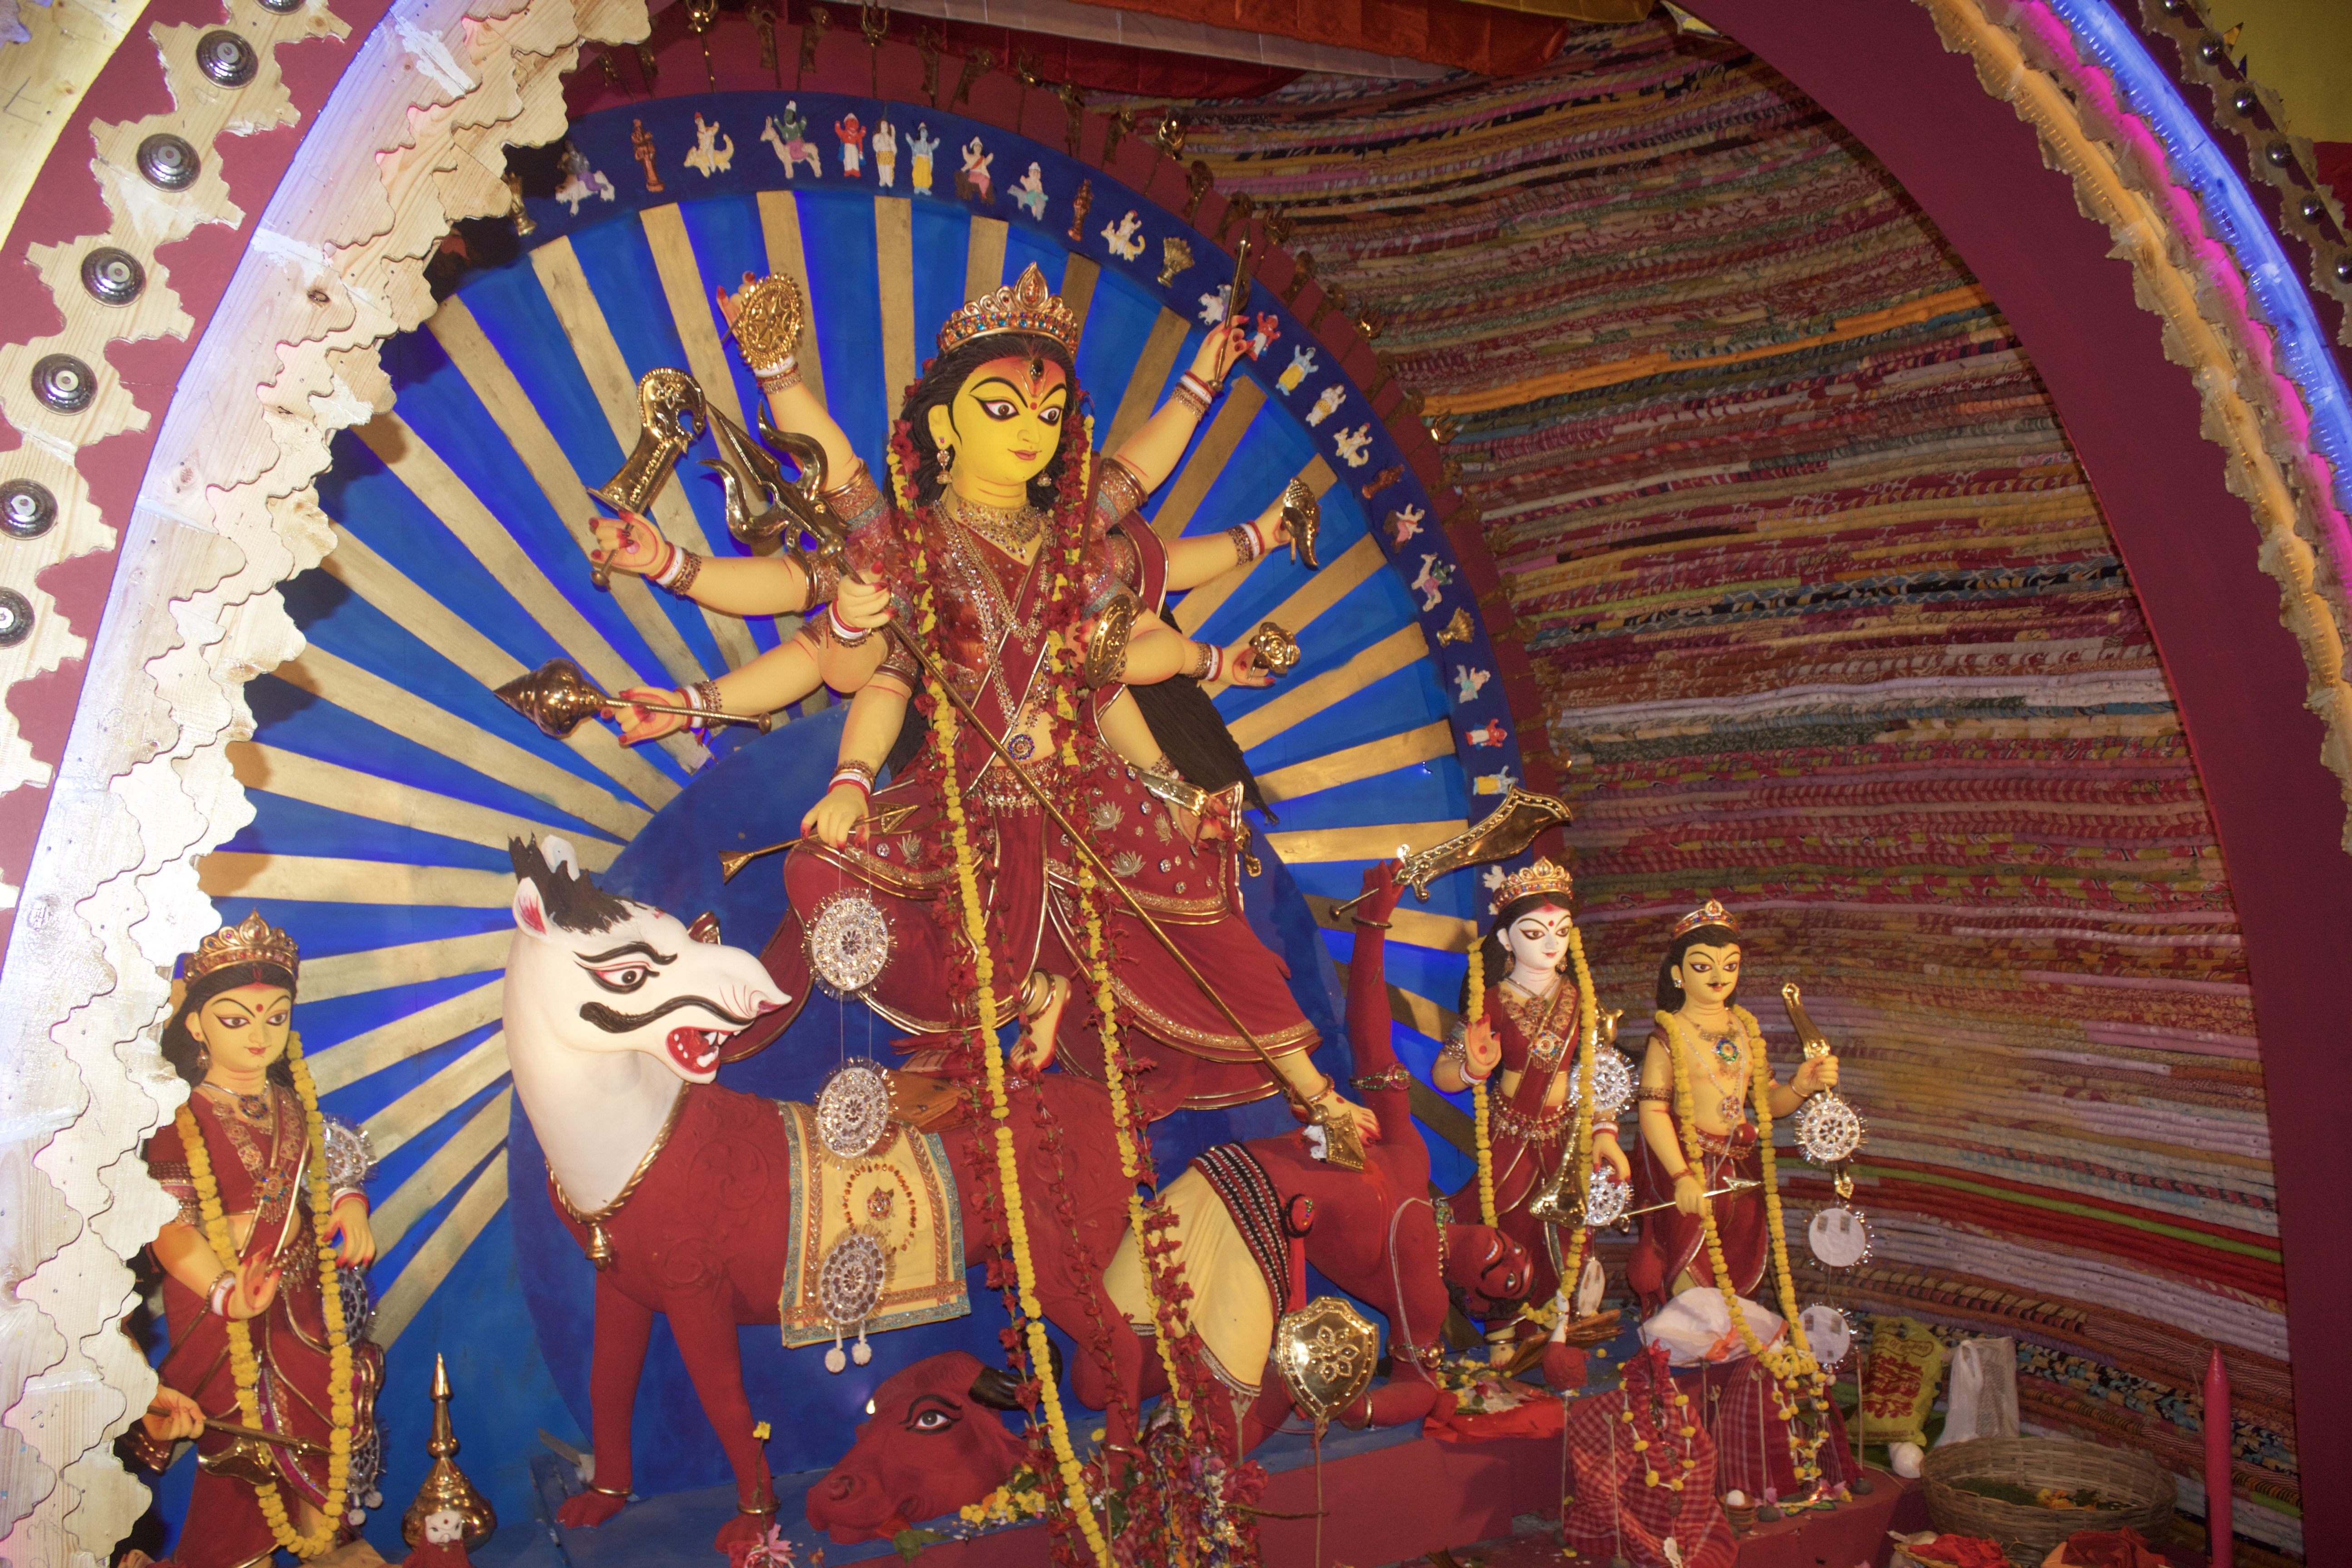 One of the Pandal